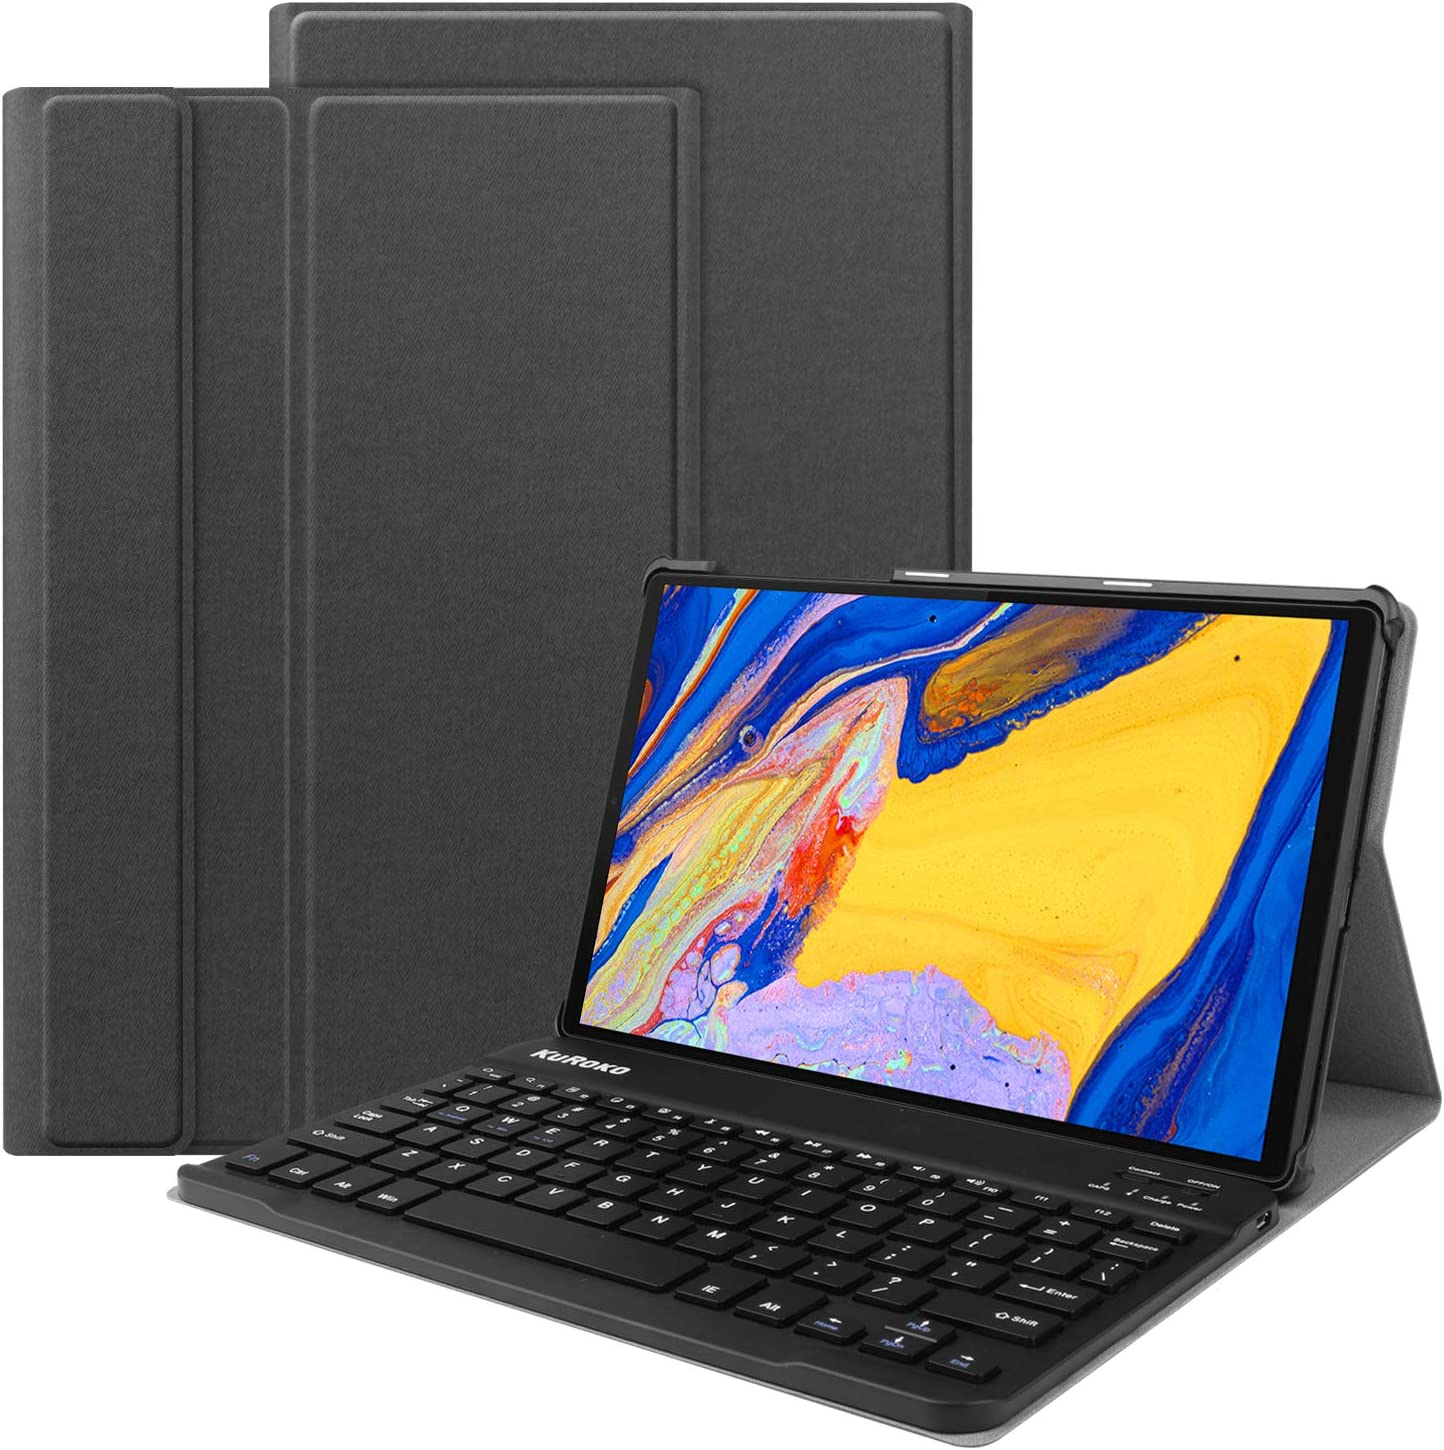 KuRoKo Lenovo m10 Plus Keyboard Case -Backshell Folio Stand Cover with Removable Wireless Keyboard Compatiable with Tab M10 FHD Plus TB-X606F / TB-X606X 10.3 (Black)